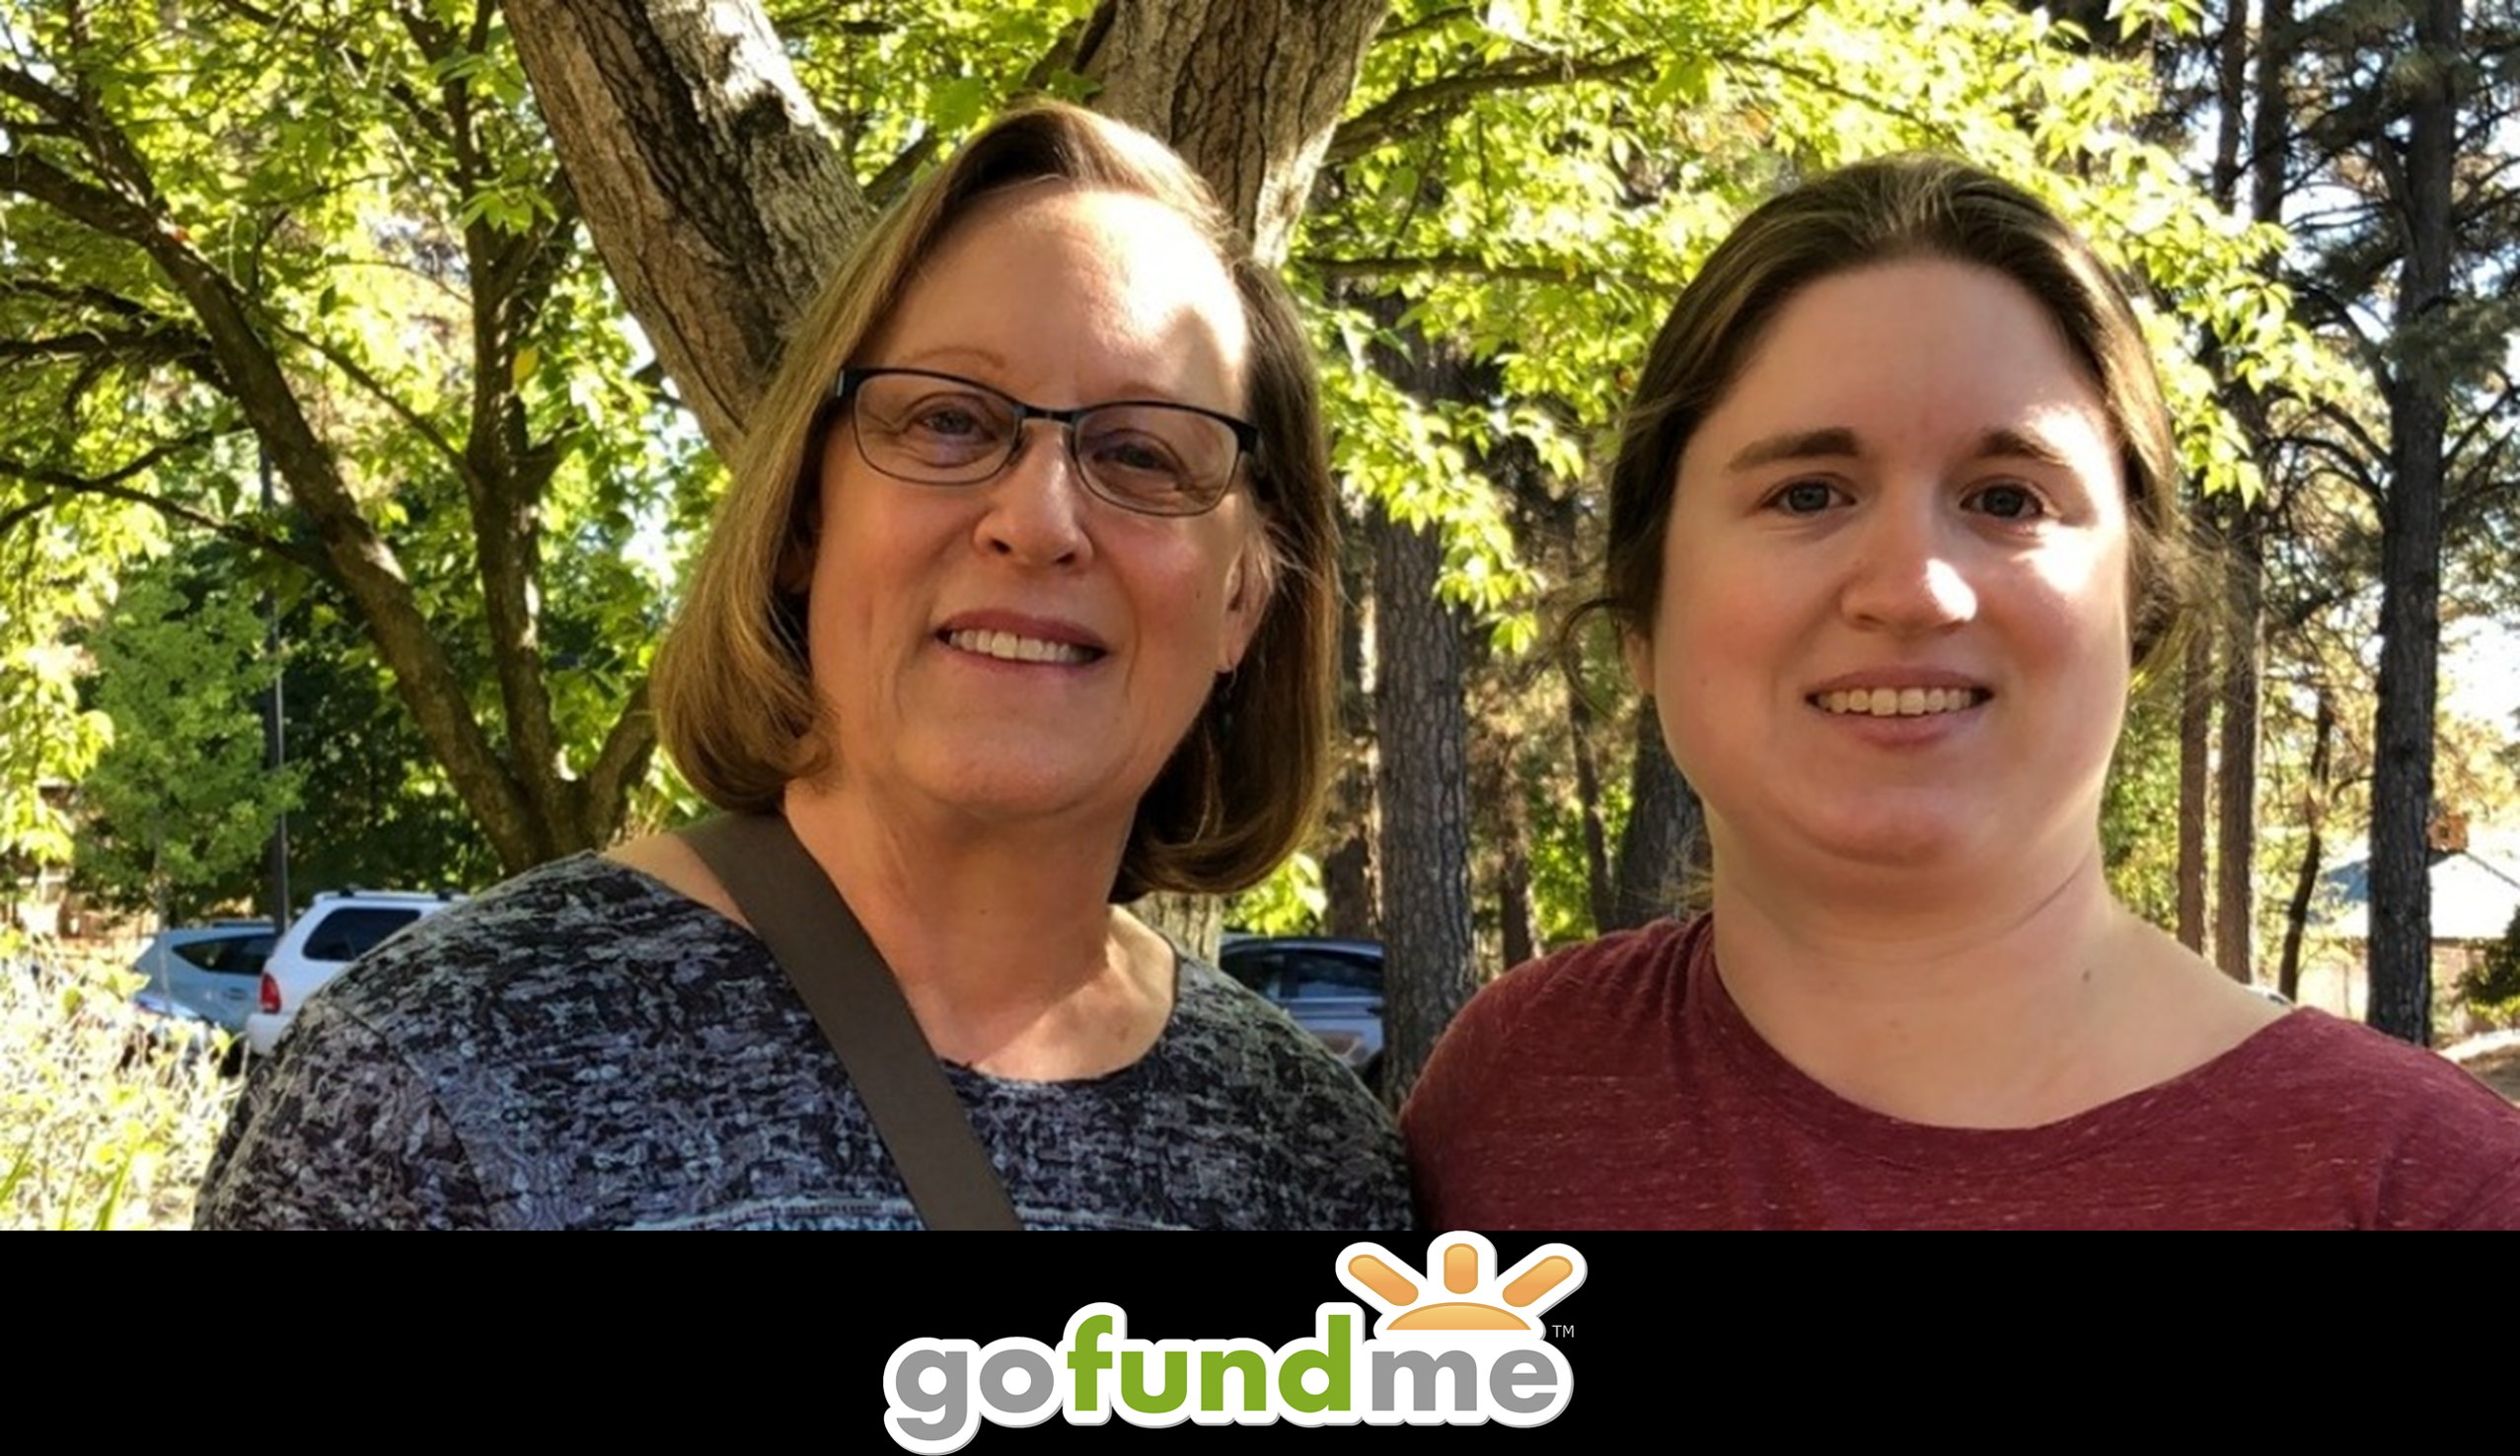 images/colleen-cathy-gofundme.png